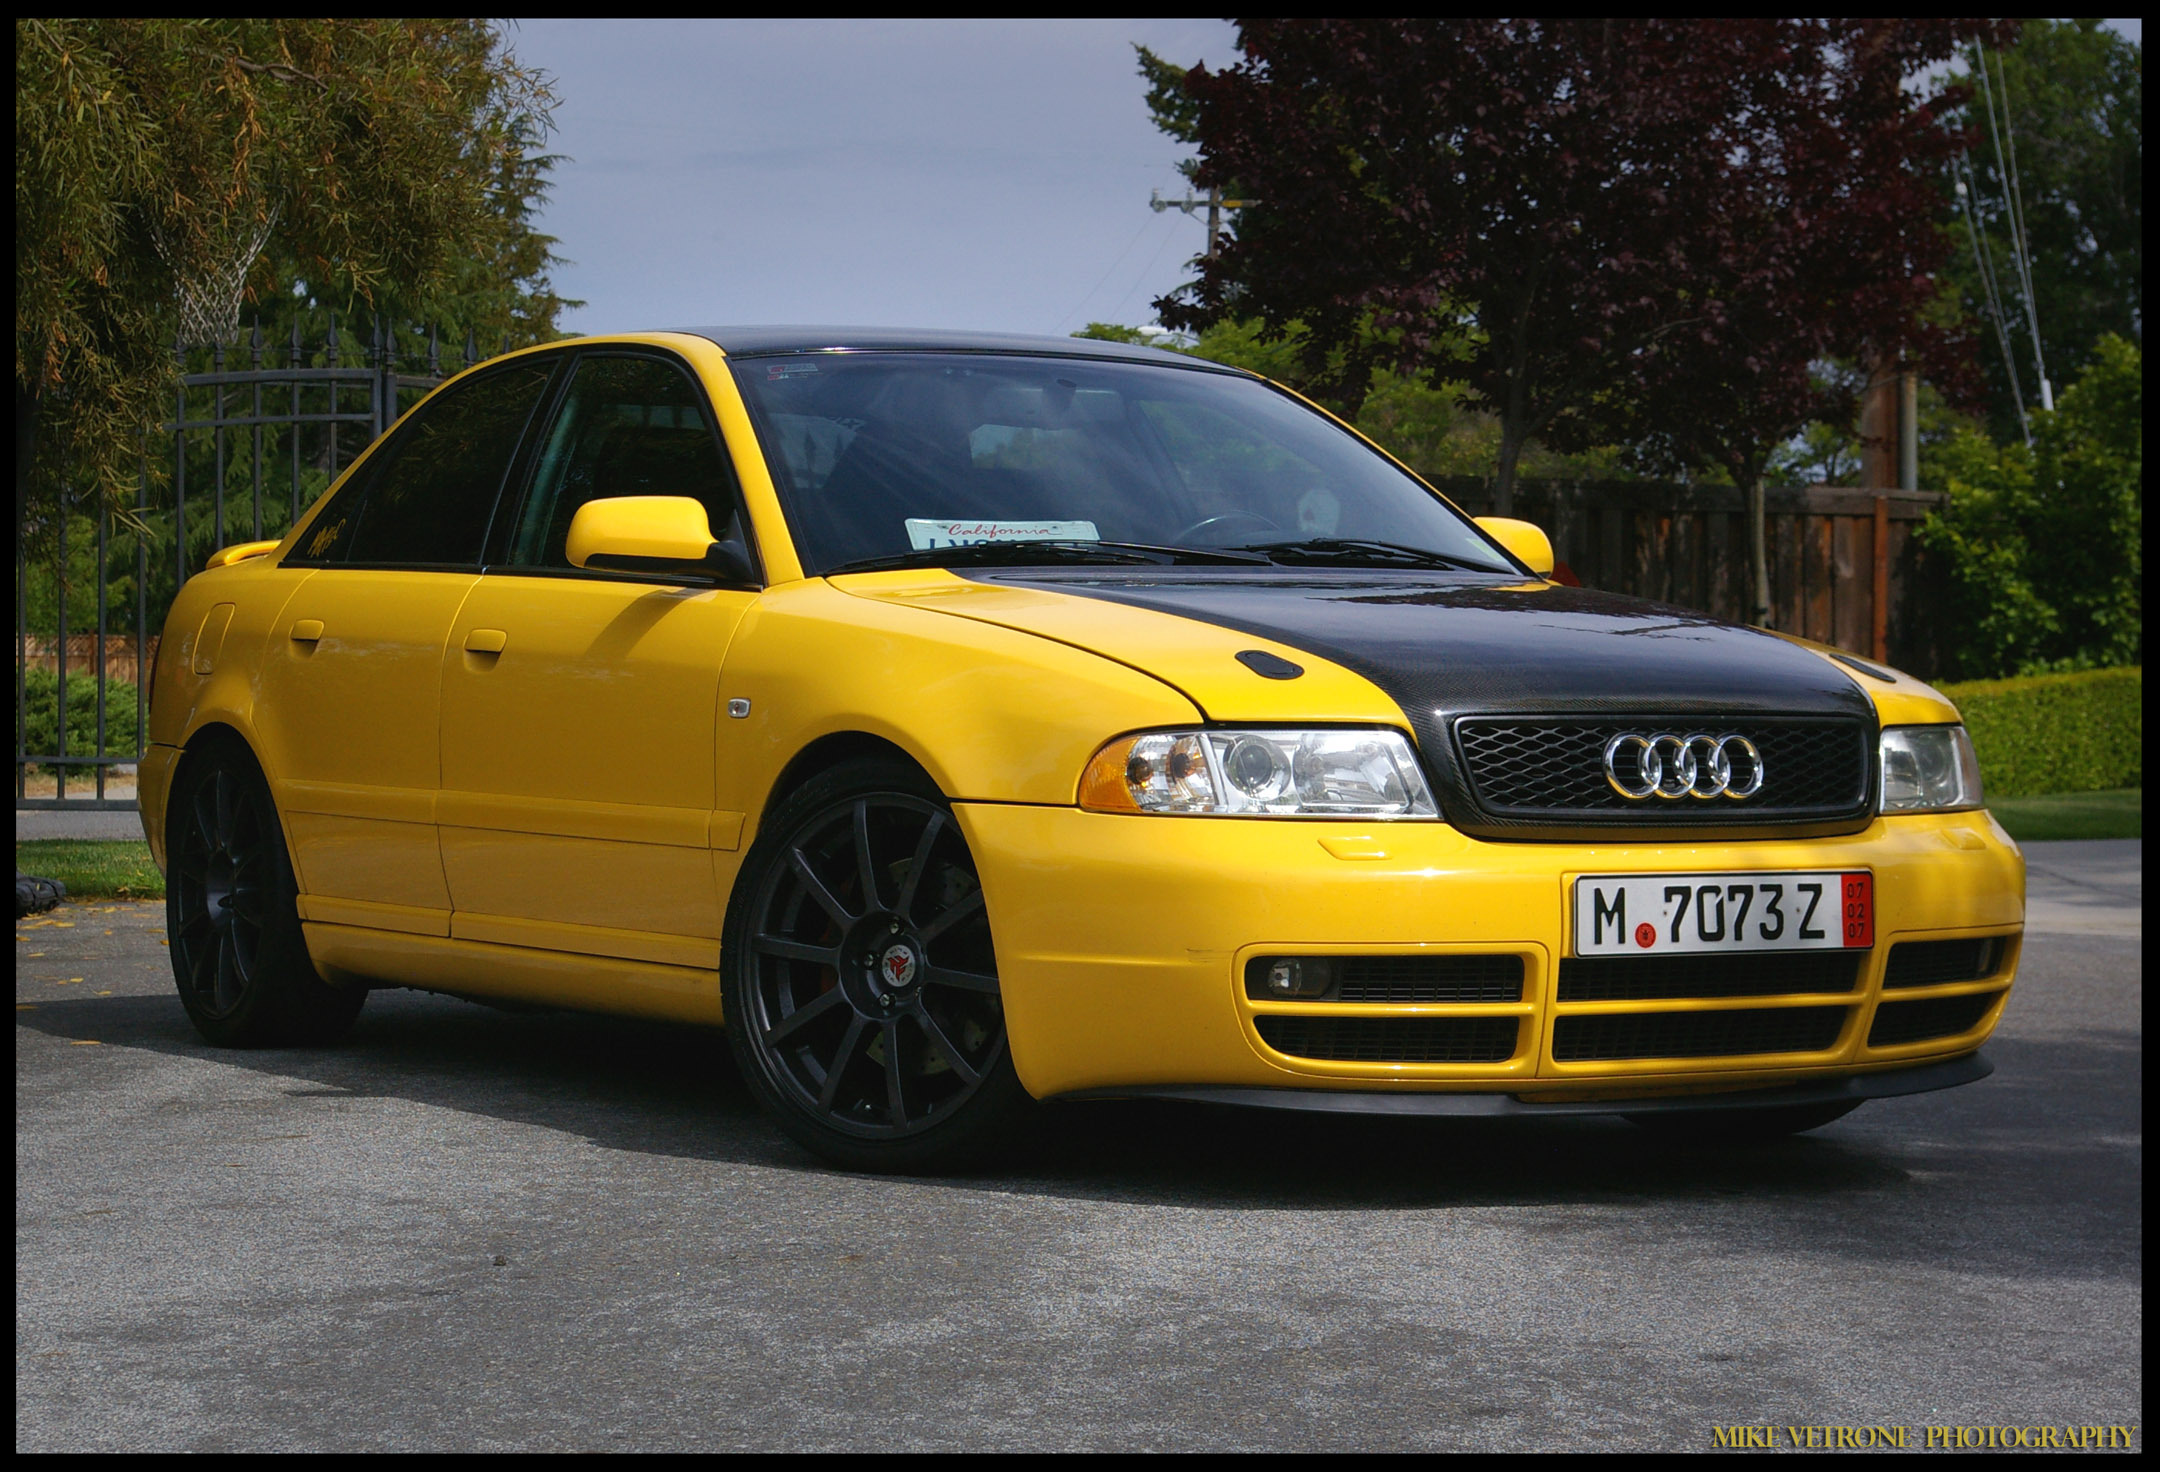 2002 Audi S4 User Reviews Cargurus Where Are Fuses And Battery In Fuse Box Related Video Of A4 B8 Fusebox 14 File 00 02 Avant Wikimedia Commons 4